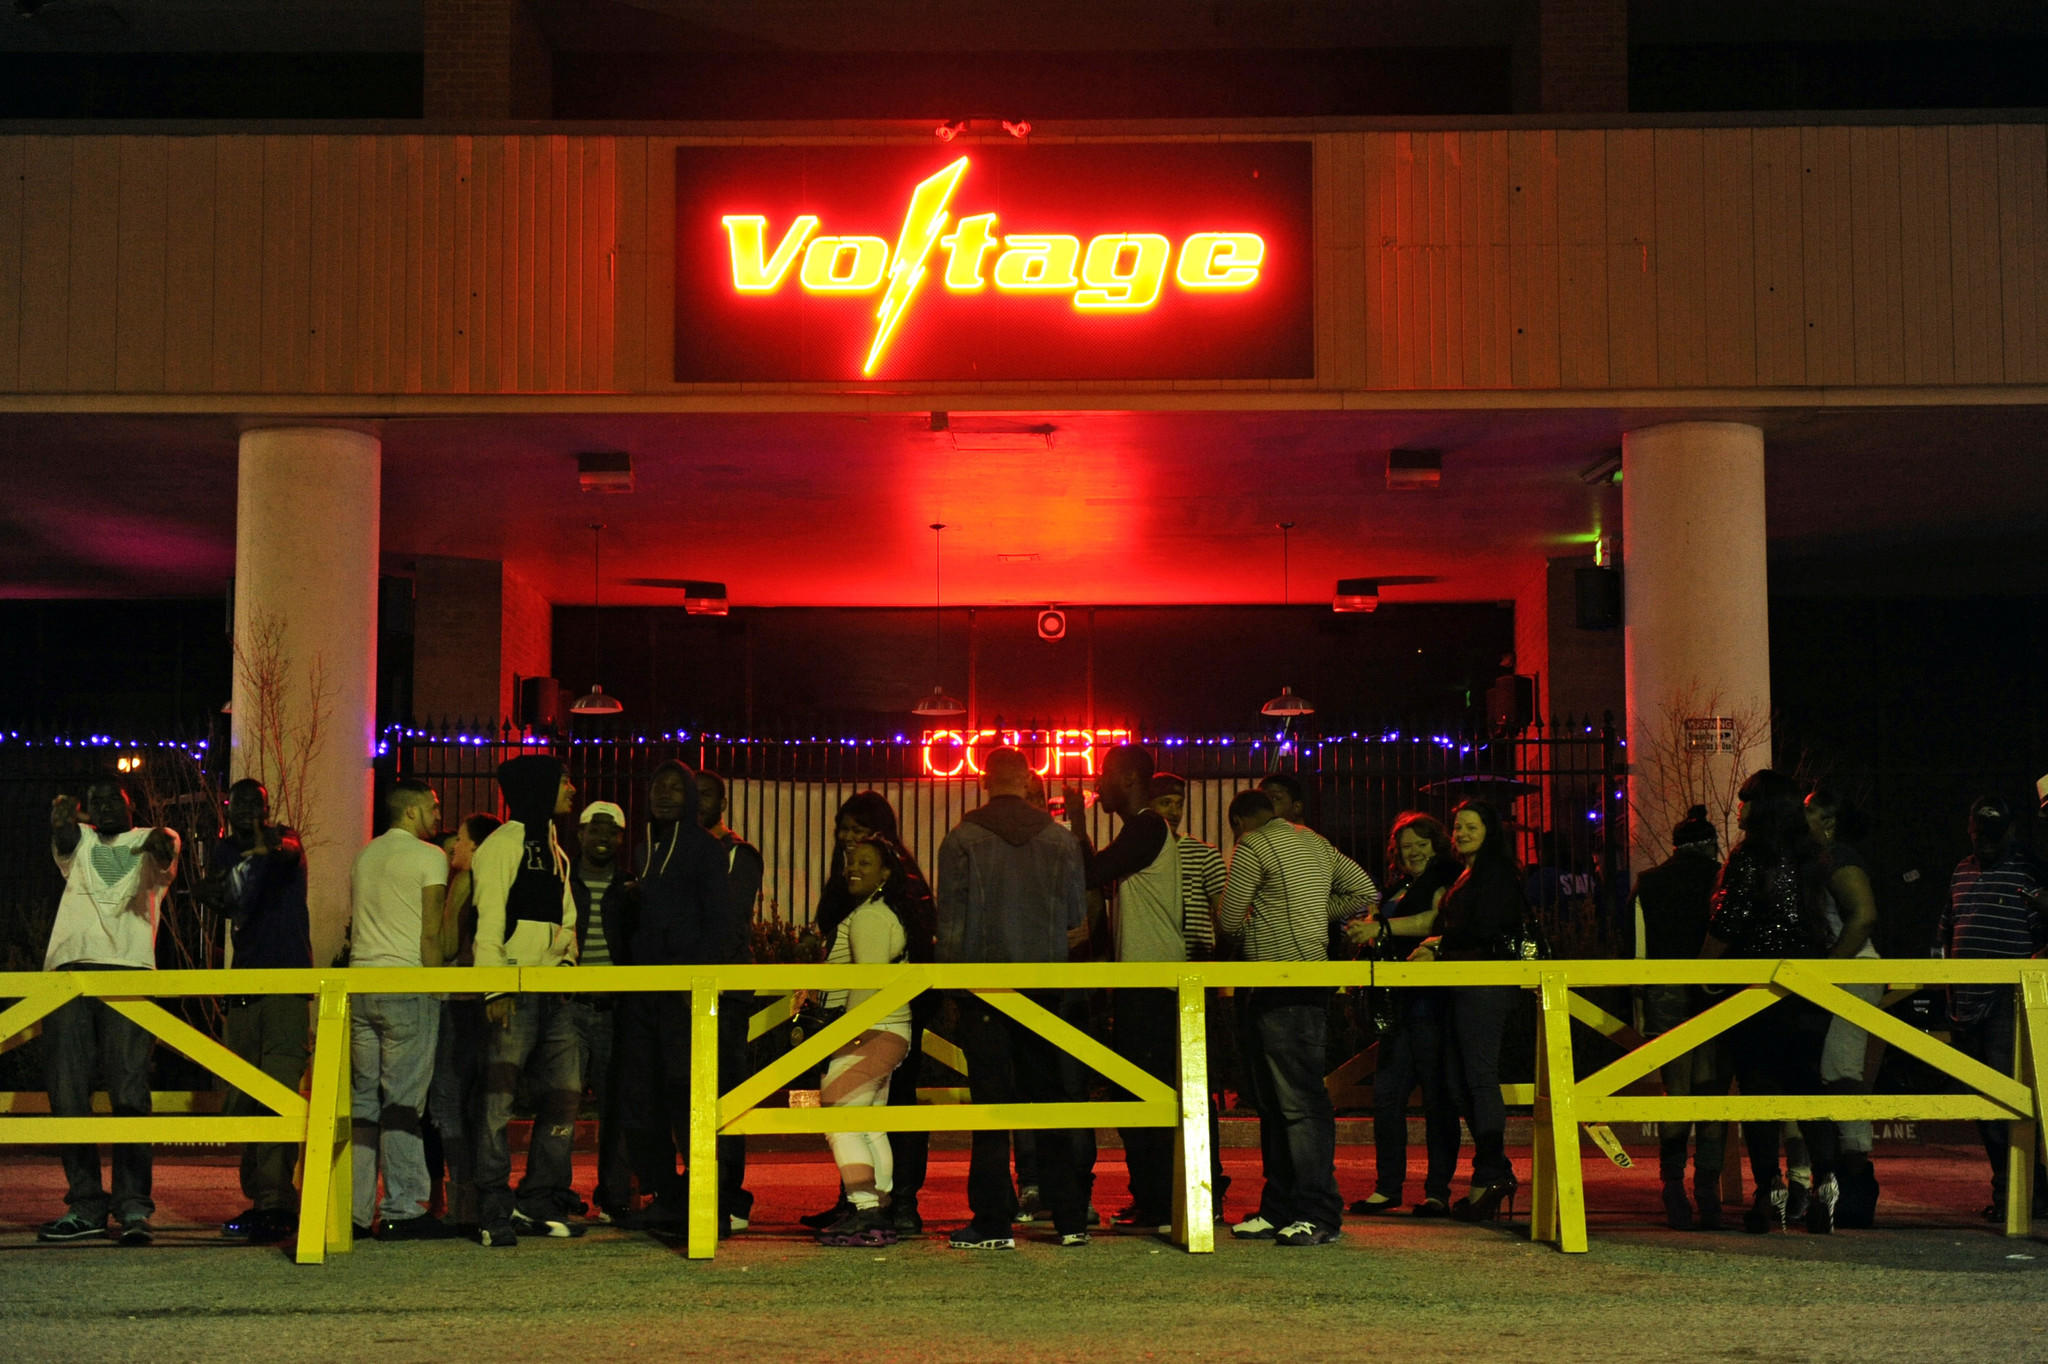 Patrons wait to enter Voltage nightclub in this file photo.